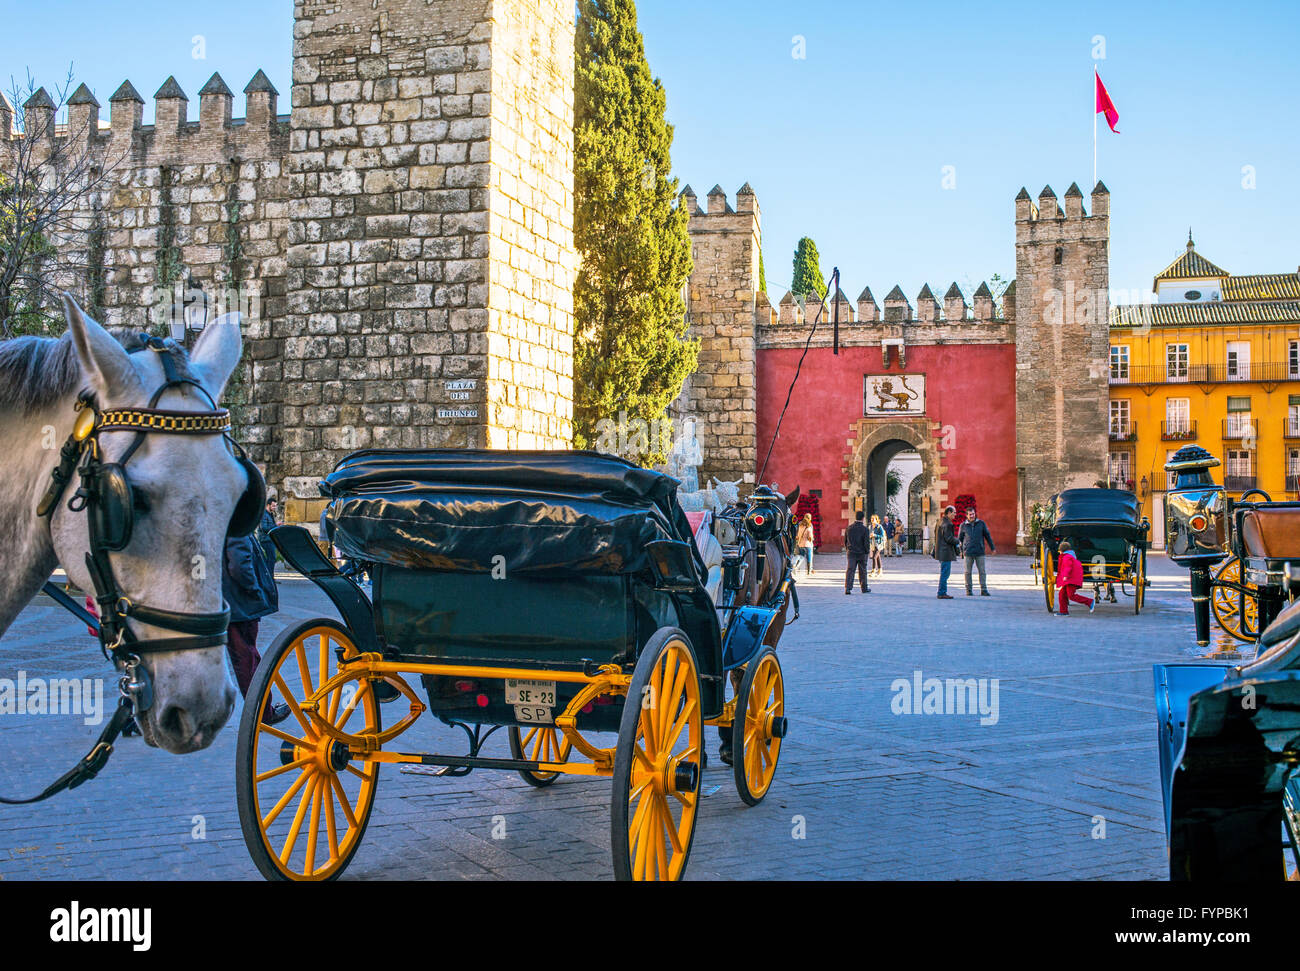 Spain, Andalusia, Seville, carriages in the Reales Alcazares square - Stock Image